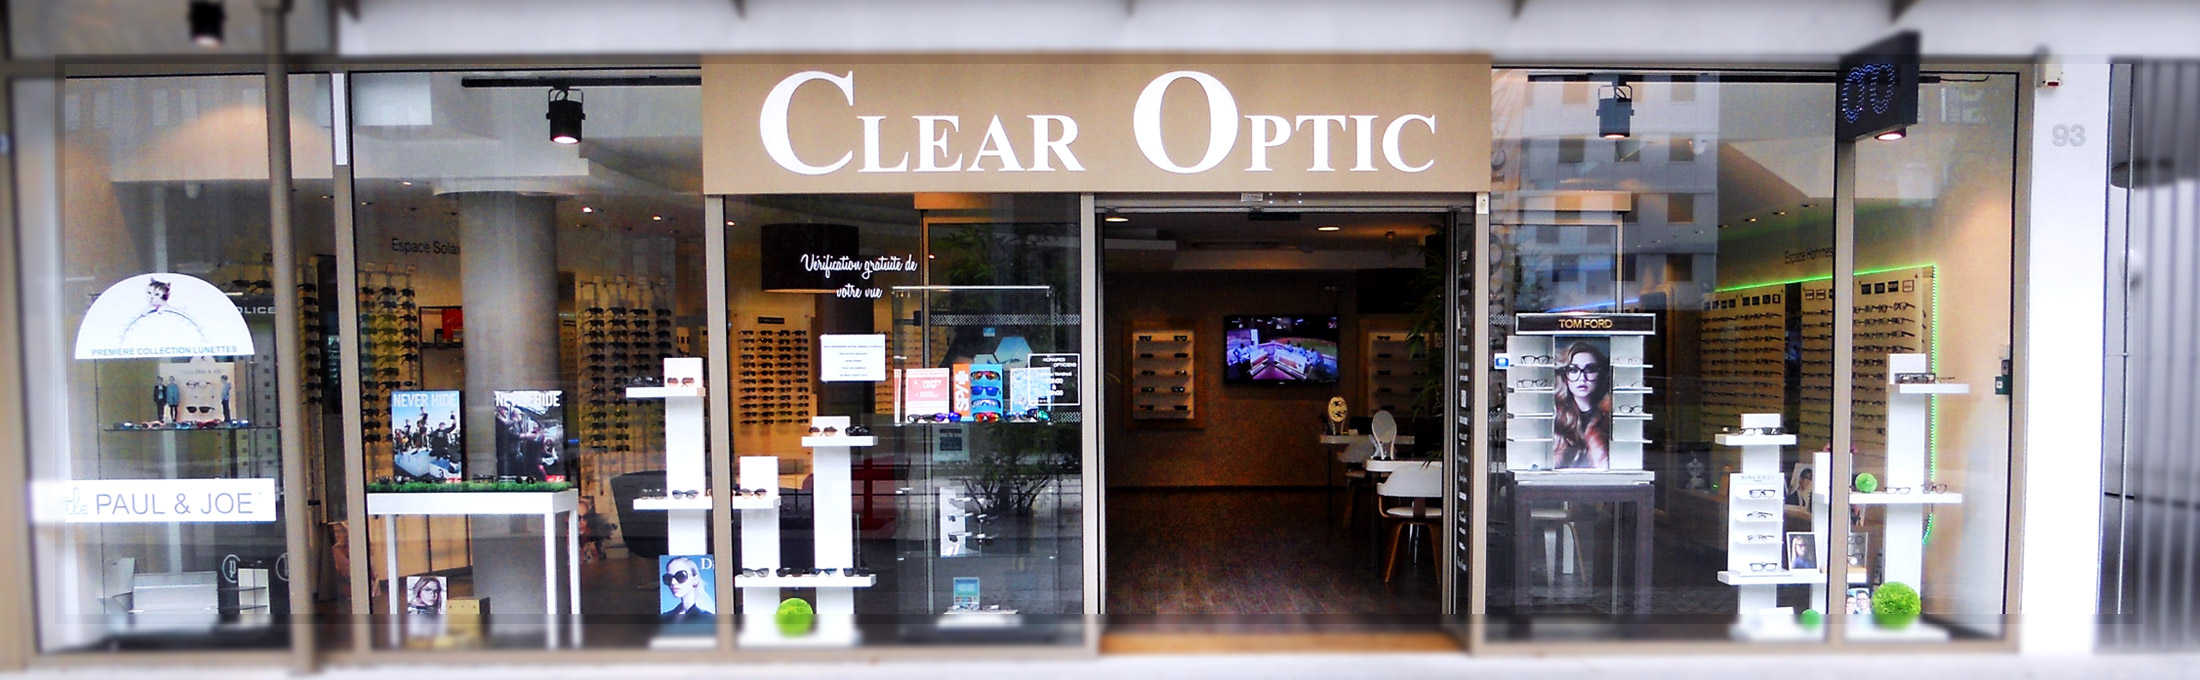 devanture clear optic